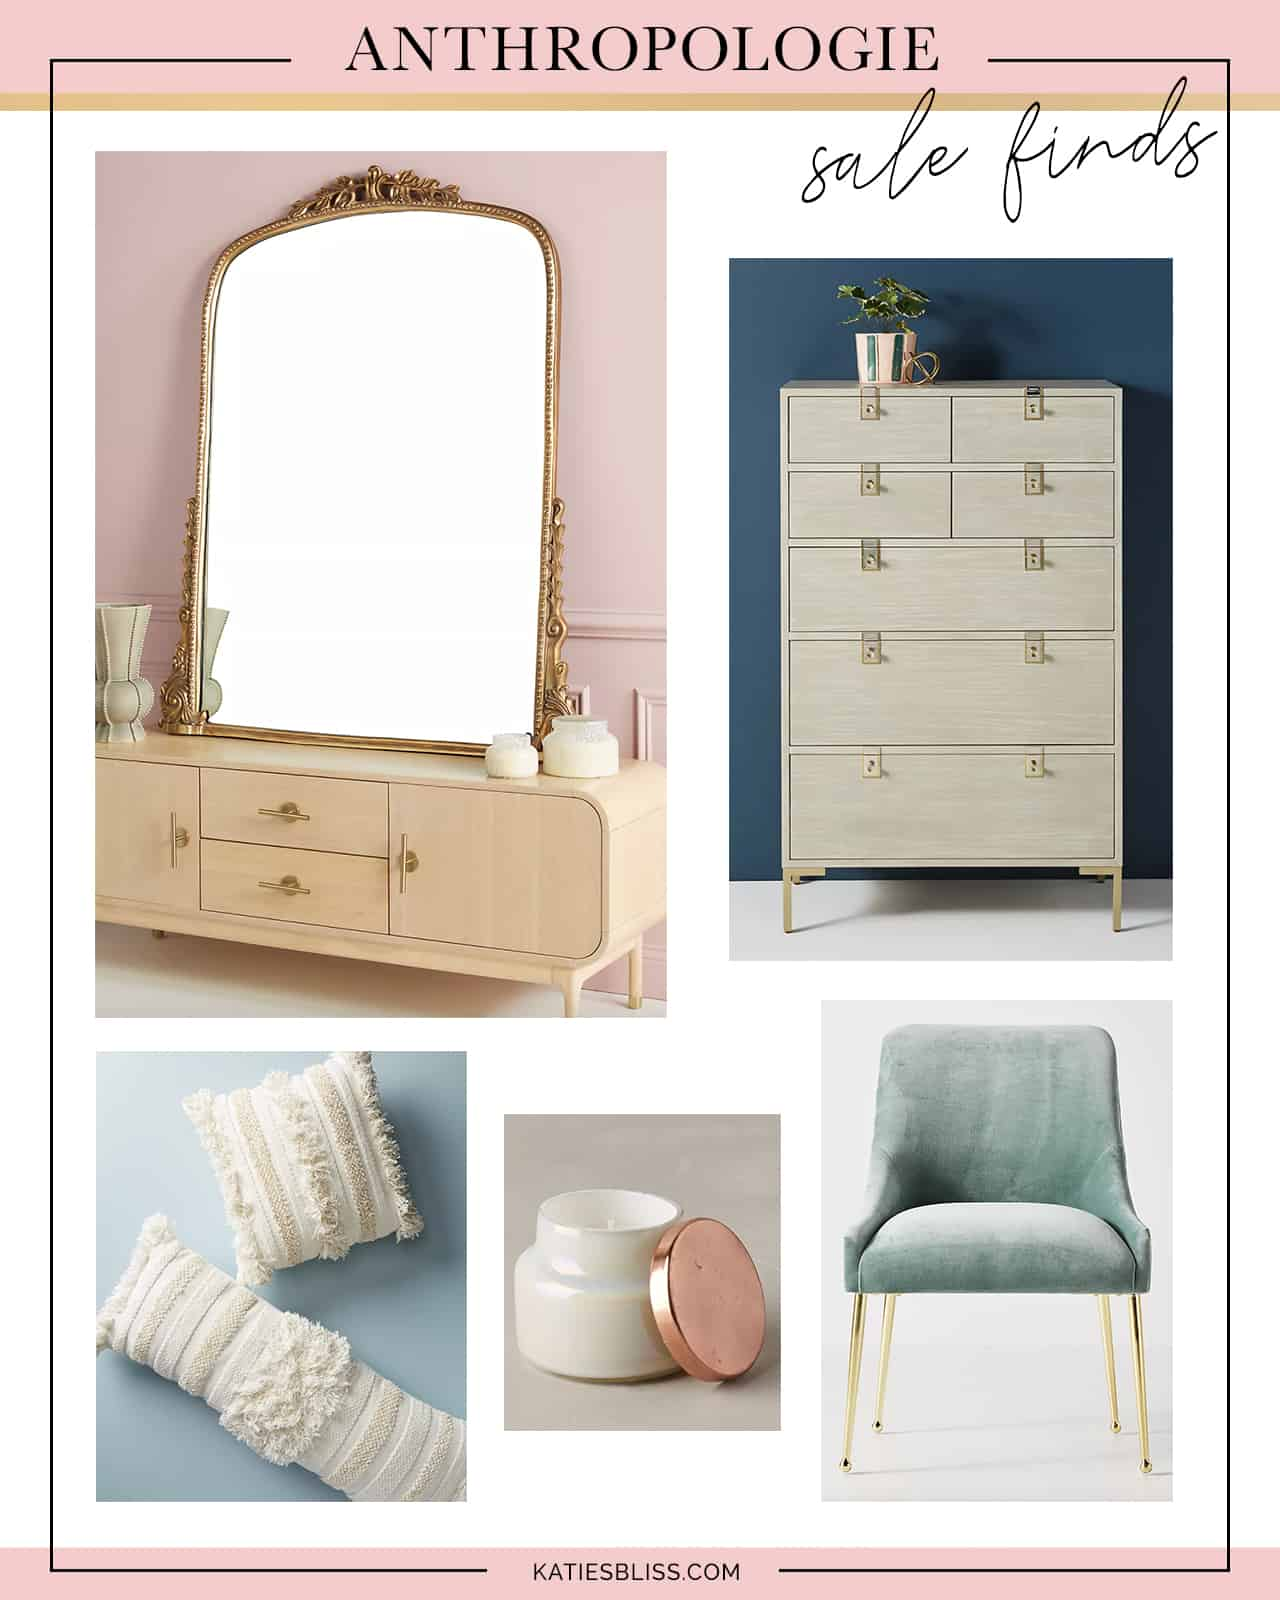 Anthropologie Labor Day Sale Finds